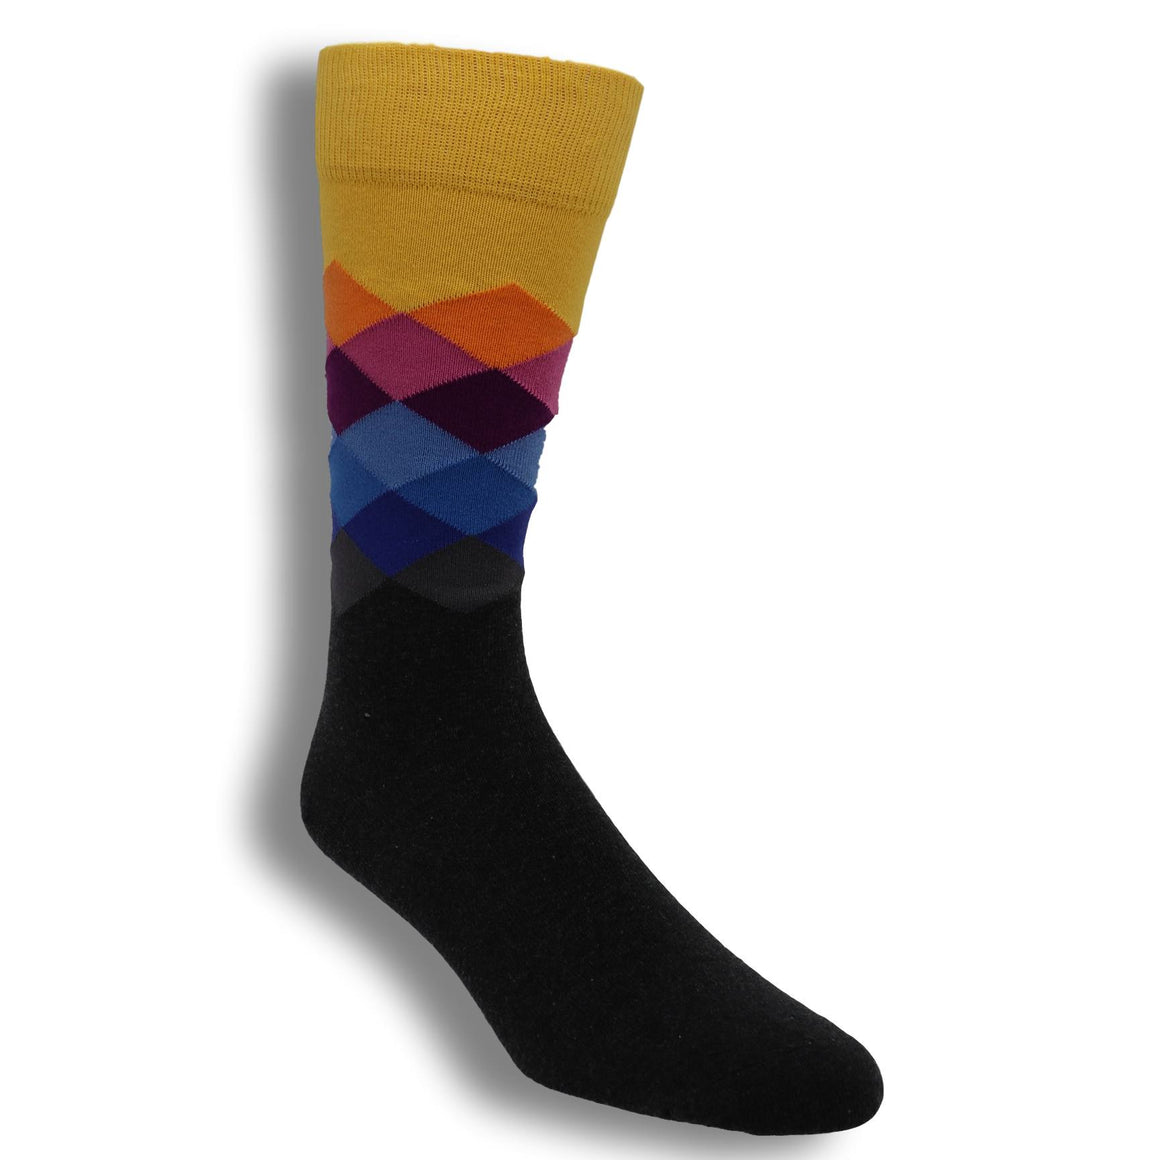 Yellow, Orange, and Blue Faded Diamond Socks by Happy Socks - The Sock Spot